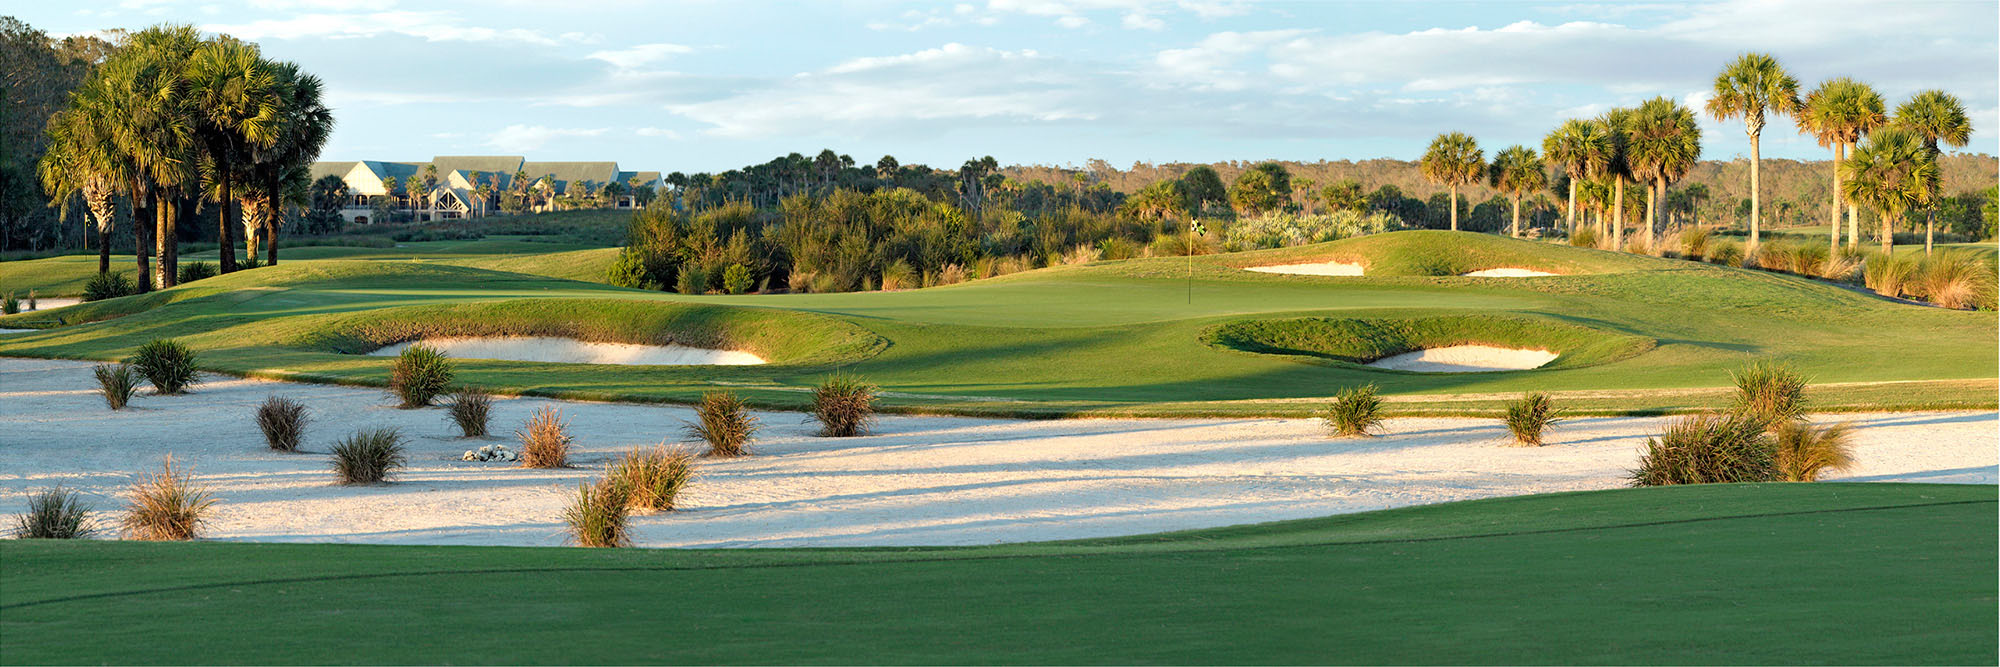 Golf Course Image - Twin Eagles No. 16